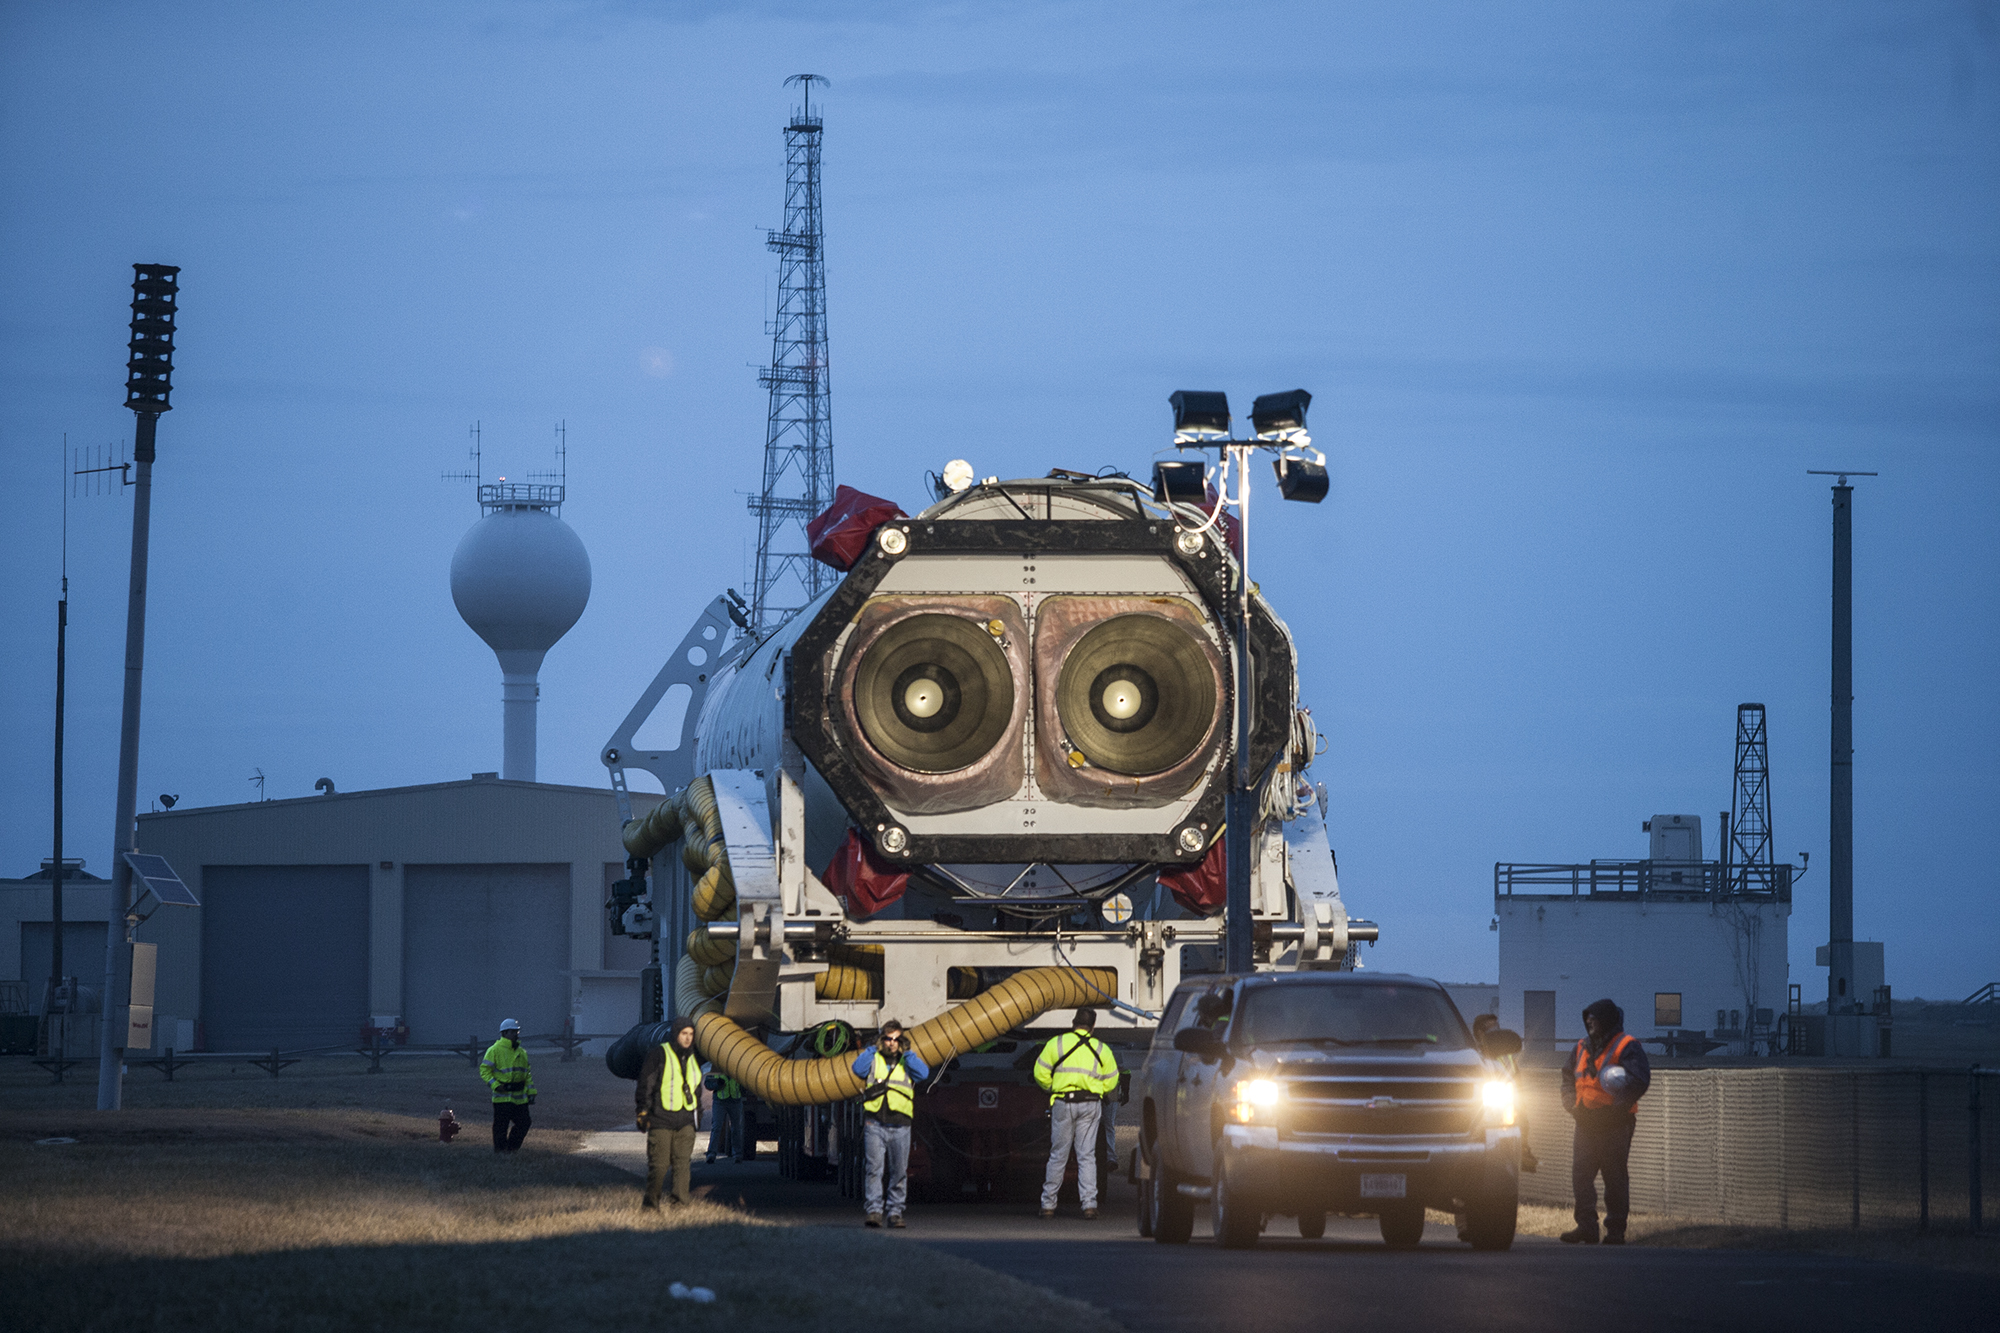 Orb-1 Antares Rocket Roll Out